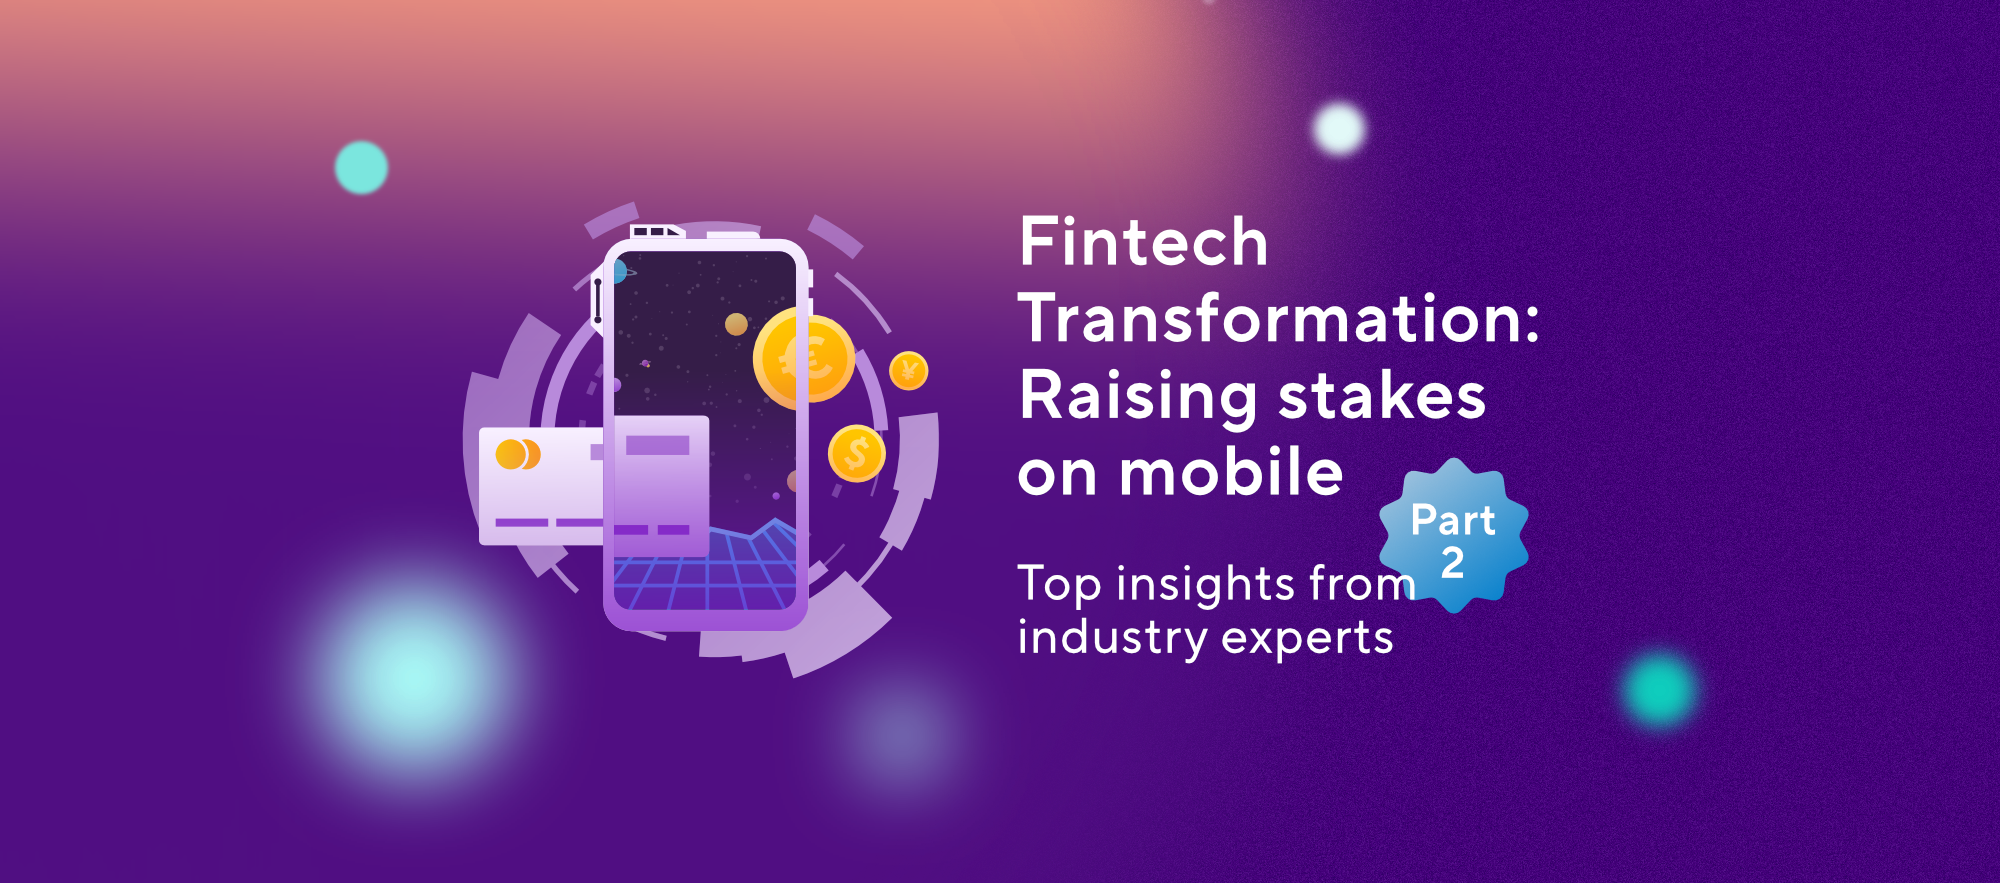 A banking expert's perspective on future fintech trends